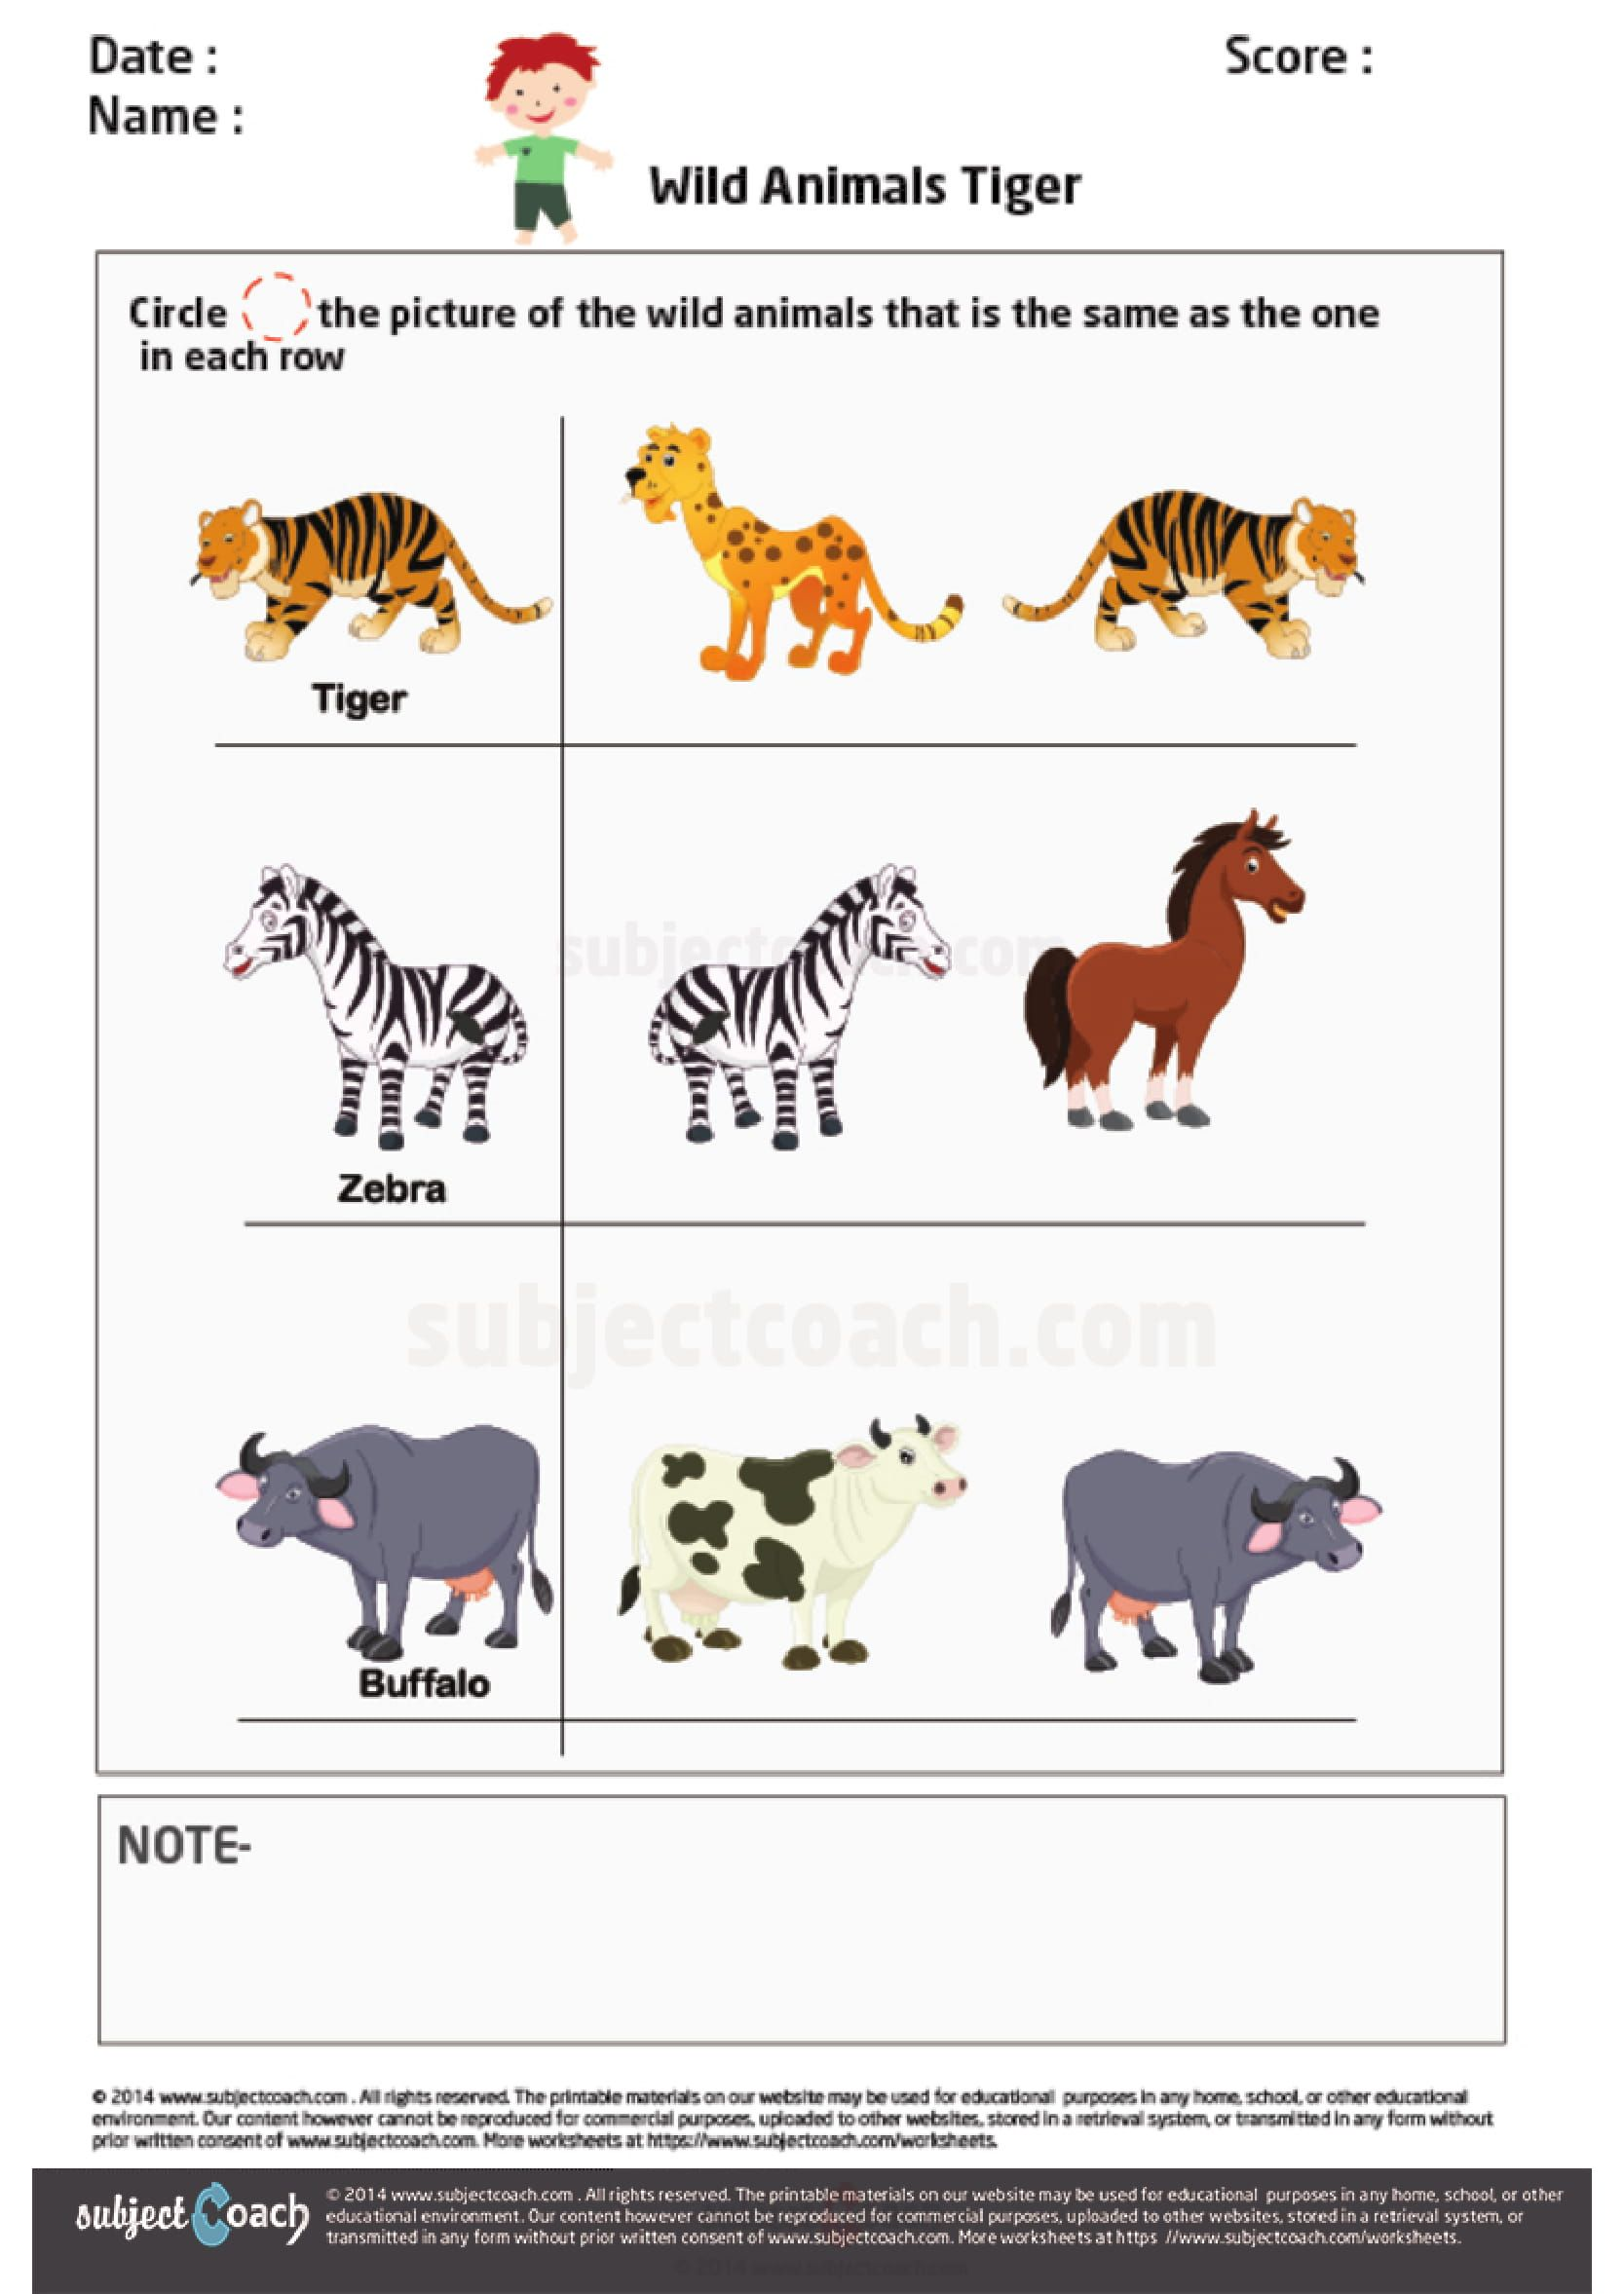 Worksheet Wild Animals Tiger Circle The Picture Of The